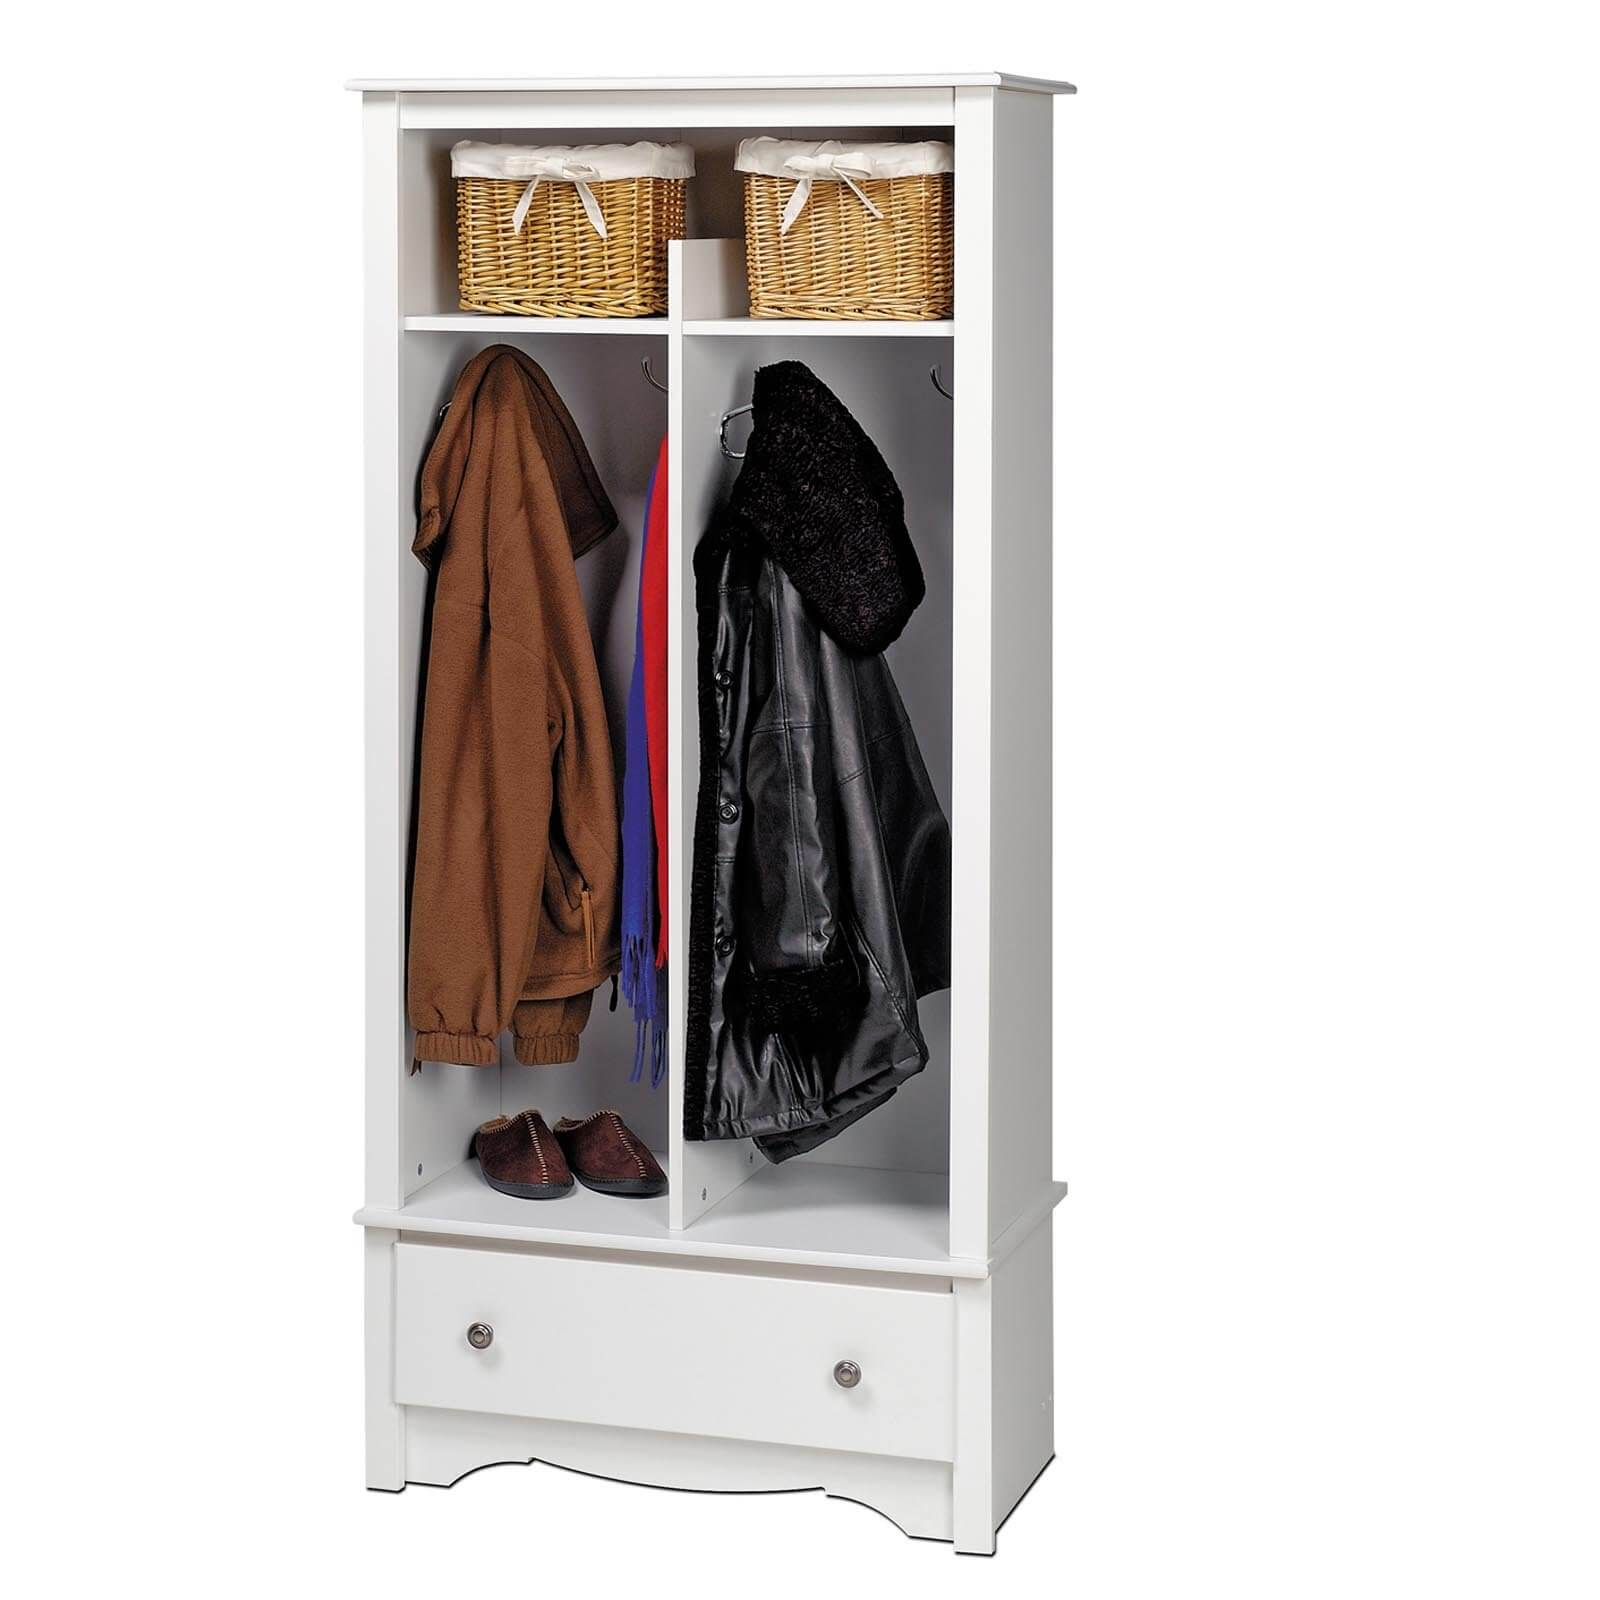 Here's white mudroom storage unit that's somewhat decorative and would look good in a home's main entrance hall. At 69 inches in height, it's fairly tall, but will fit under all ceilings. It includes 2 sections which can be shared while offering decent organization of shoes, coats, bags, etc.